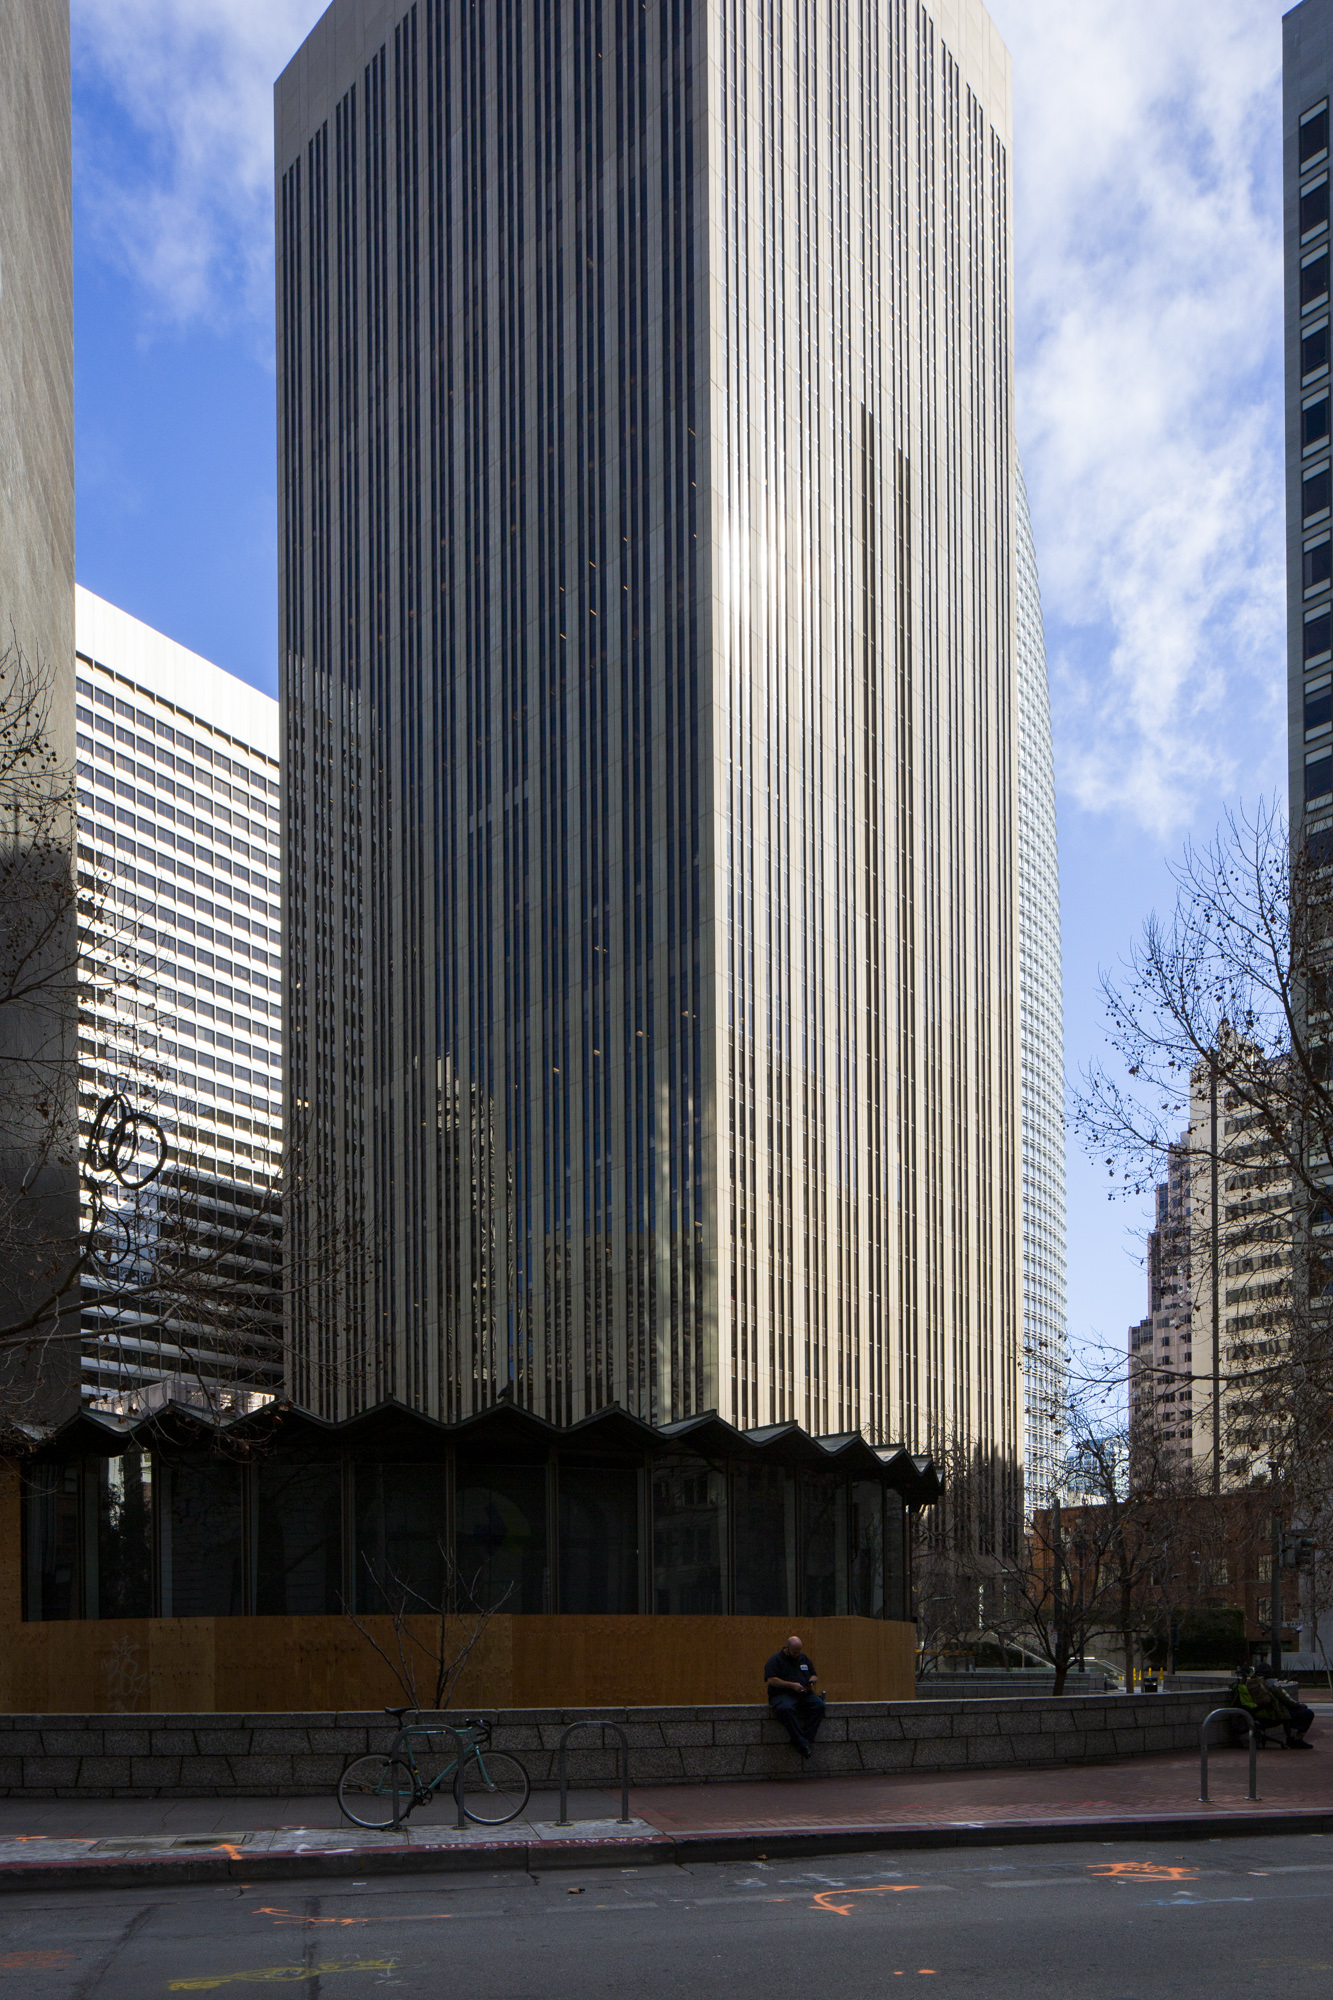 525 Market Street viewed from across the One Bush Street plaza, image by Andrew Campbell Nelson